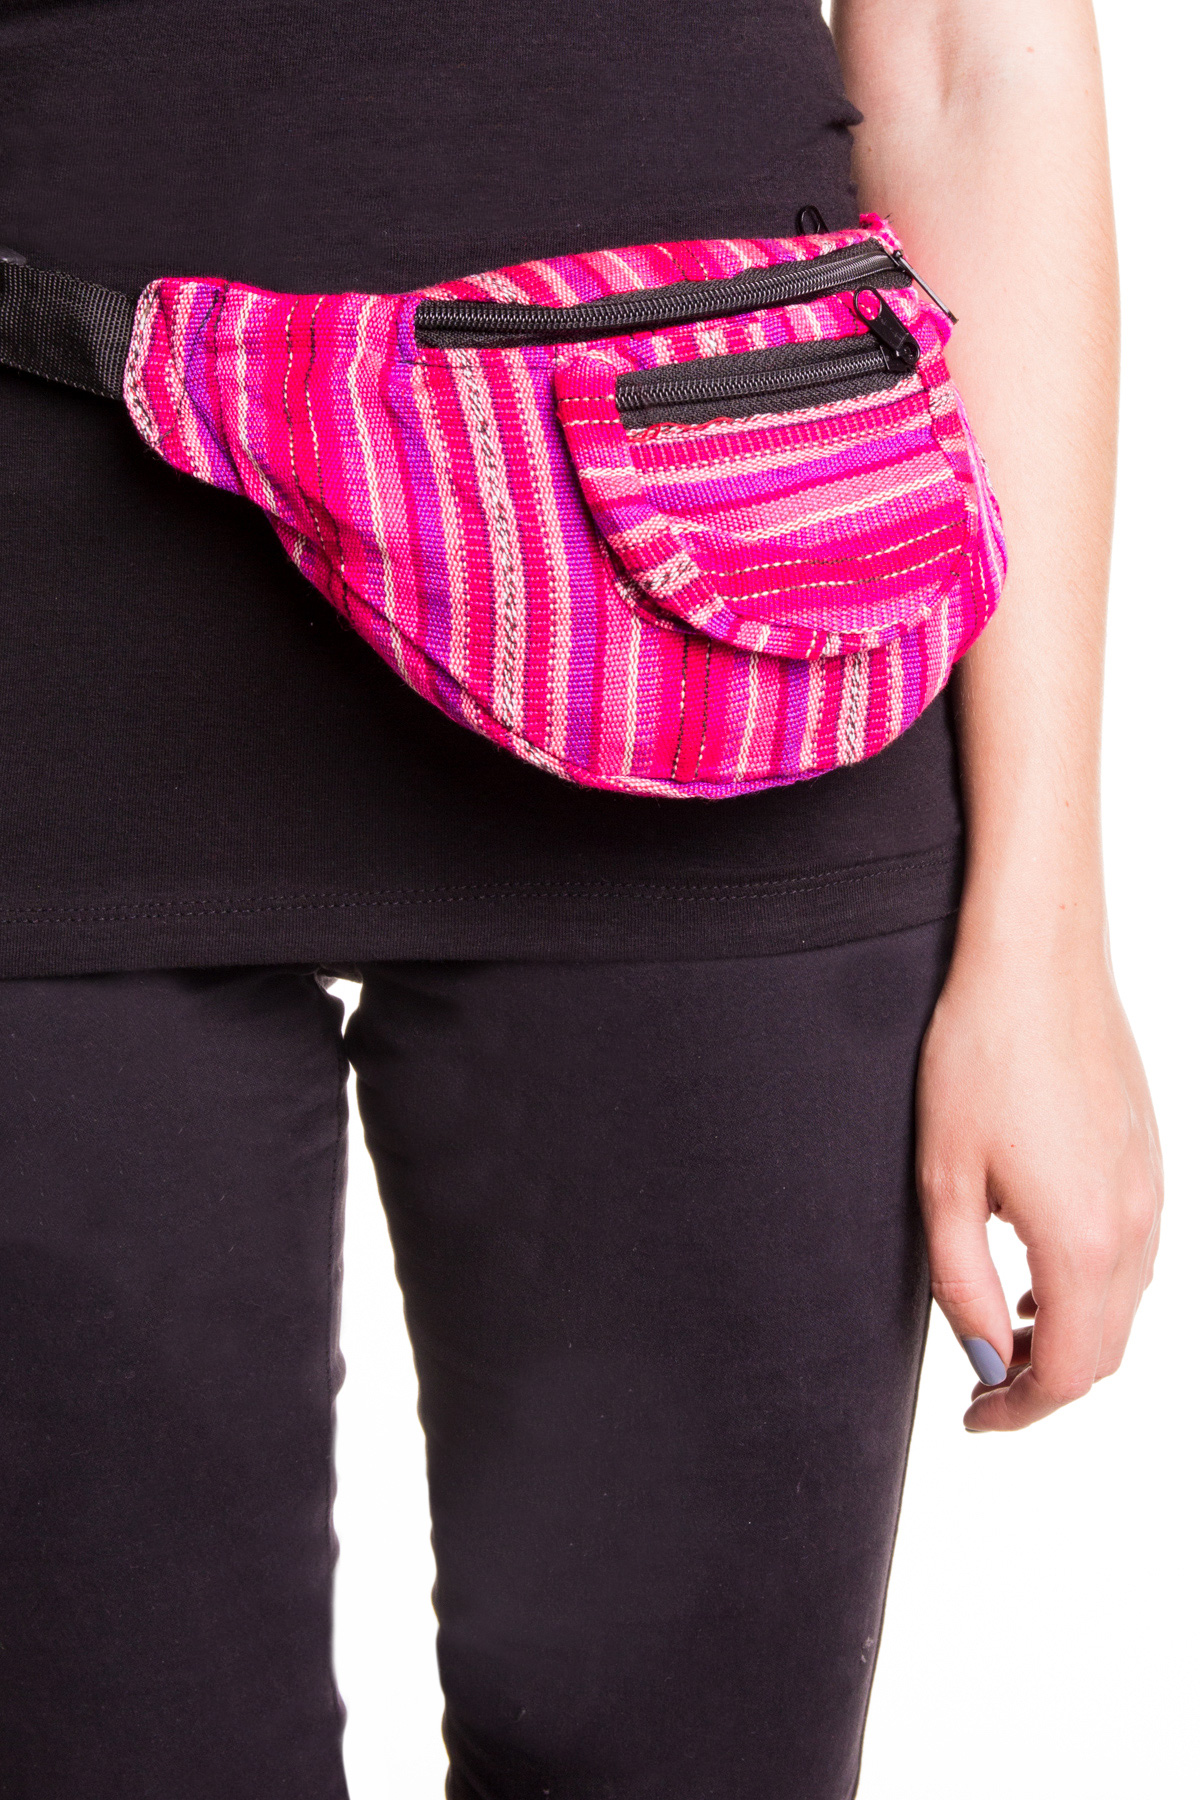 pink woven fanny pack